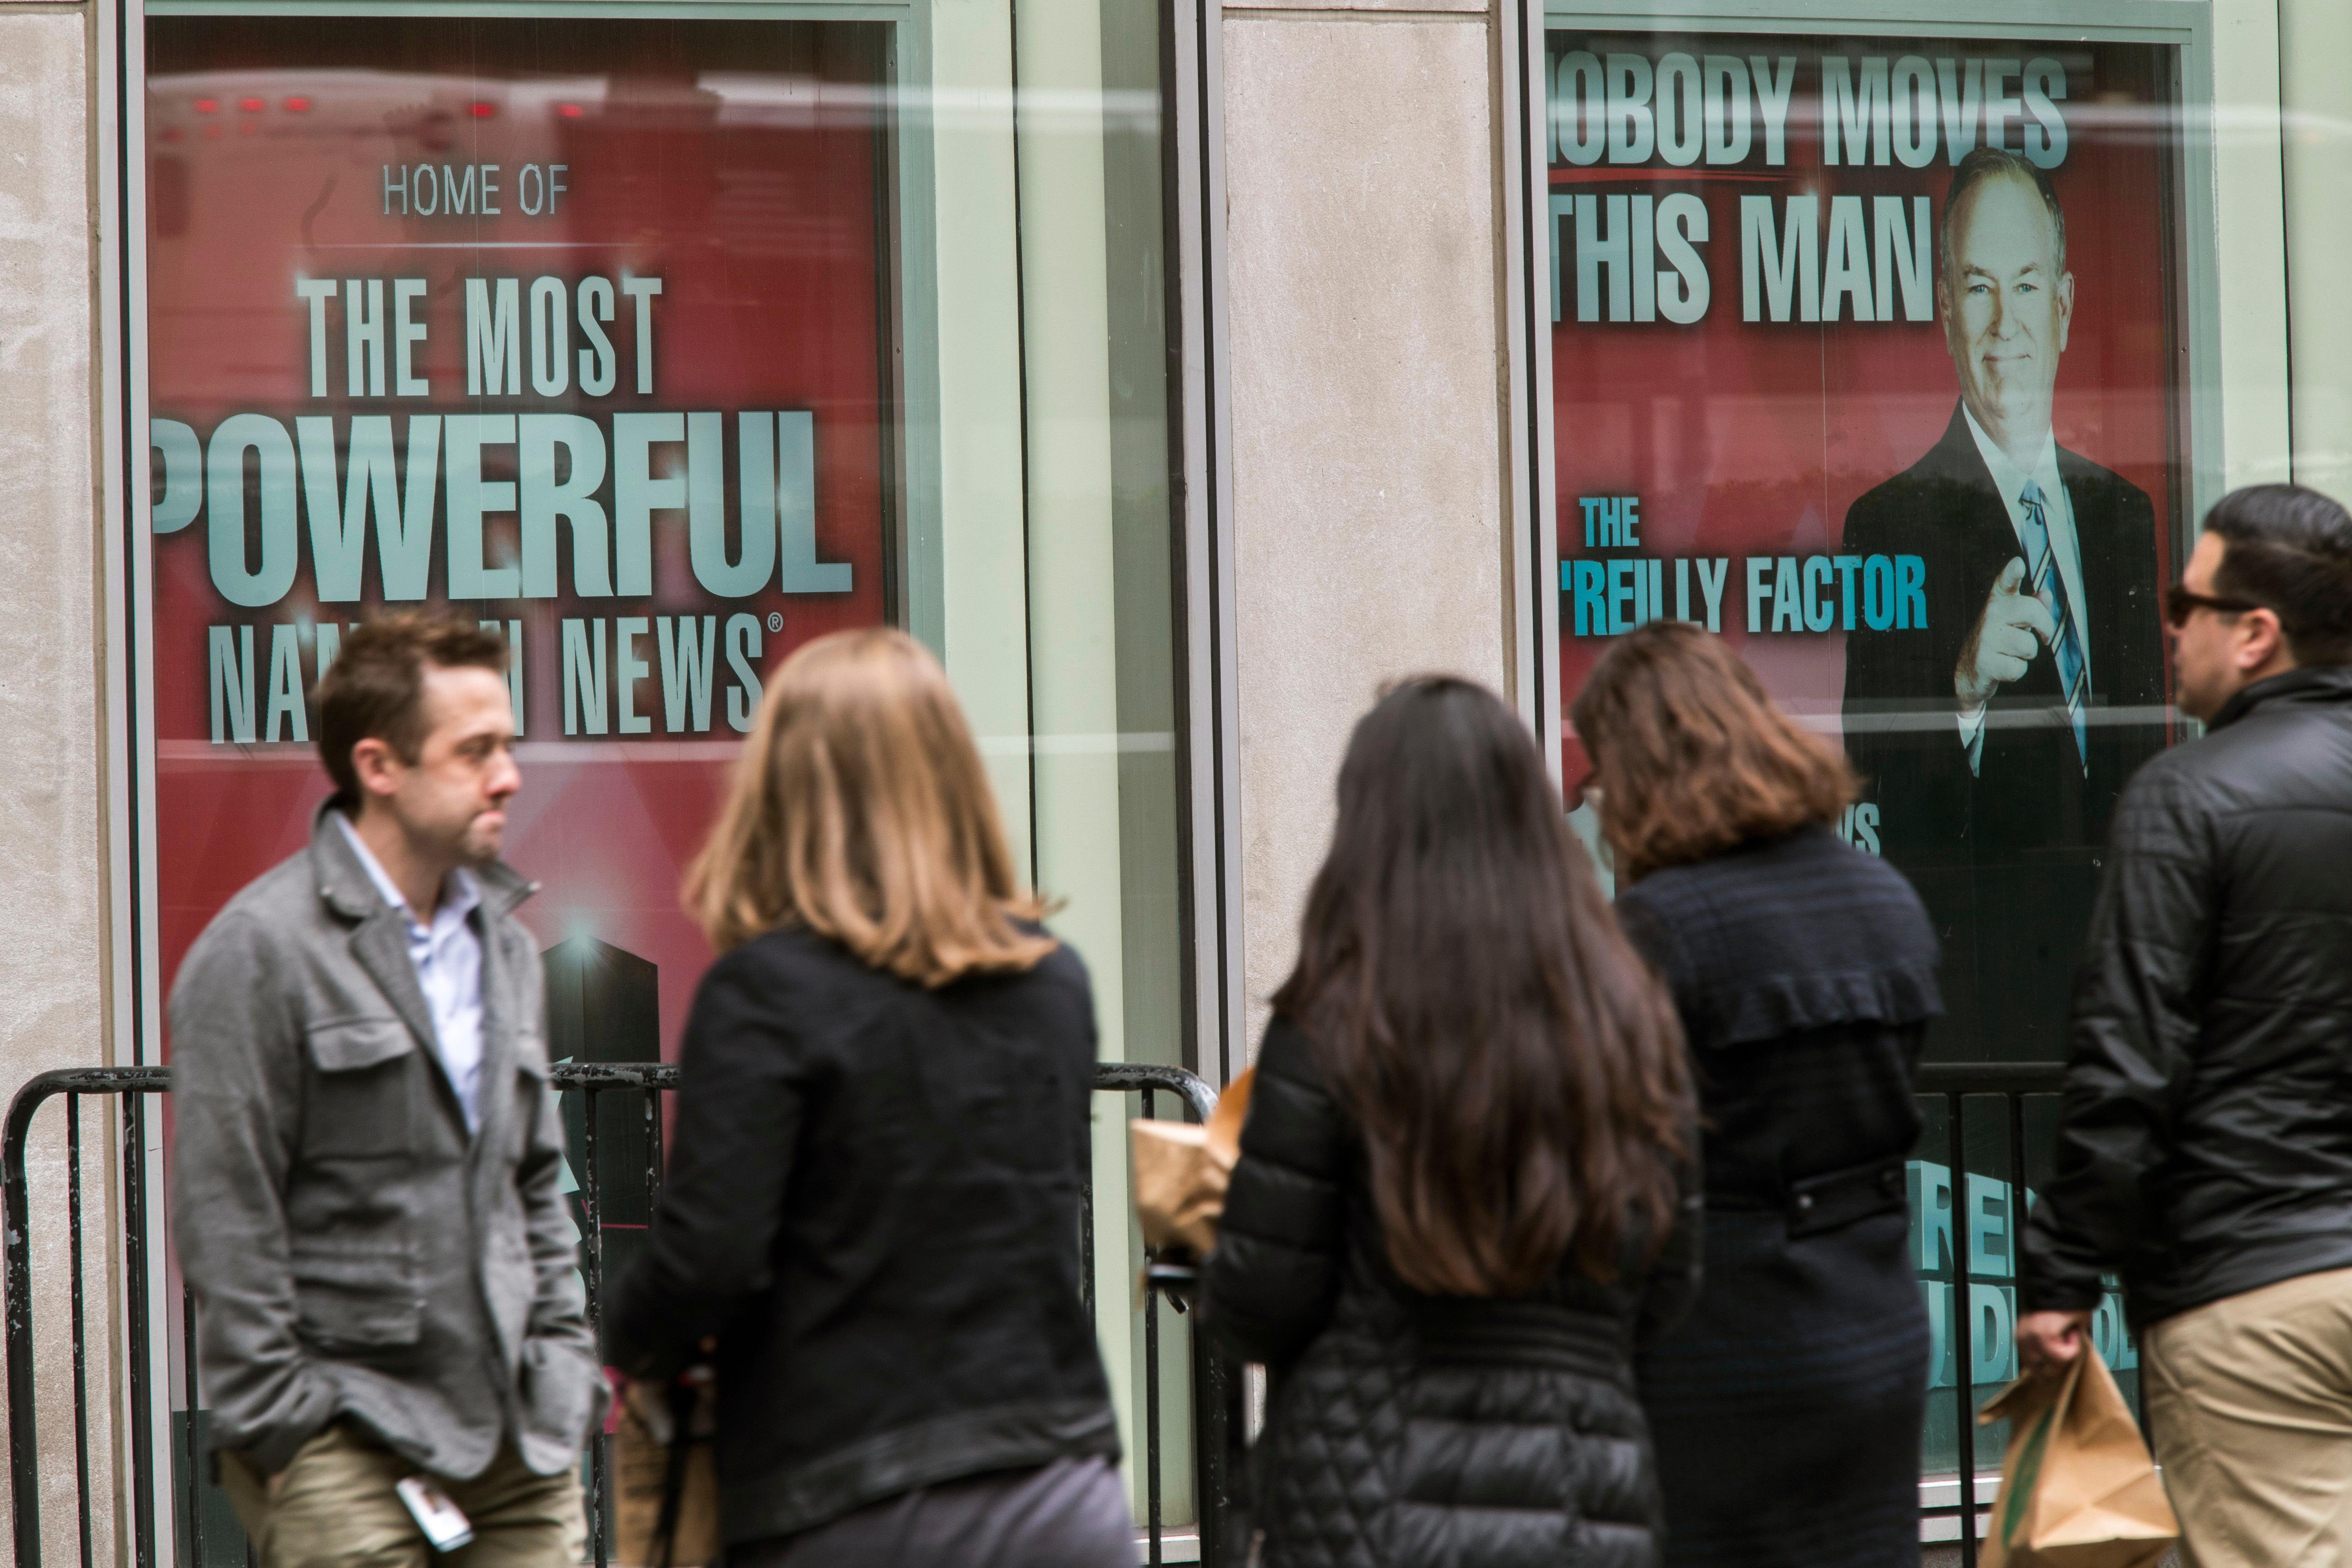 "People walk past posters featuring Bill O'Reilly as they enter the News Corp. headquarters in New York, Wednesday, April 19, 2017. O'Reilly has lost his job at Fox News Channel following reports that five women had been paid millions of dollars to keep quiet about harassment allegations. 21st Century Fox issued a statement Wednesday that ""after a thorough and careful review of the allegations, the company and Bill O'Reilly have agreed that Bill O'Reilly will not be returning to the Fox News Channel.  (AP Photo/Mary Altaffer)"